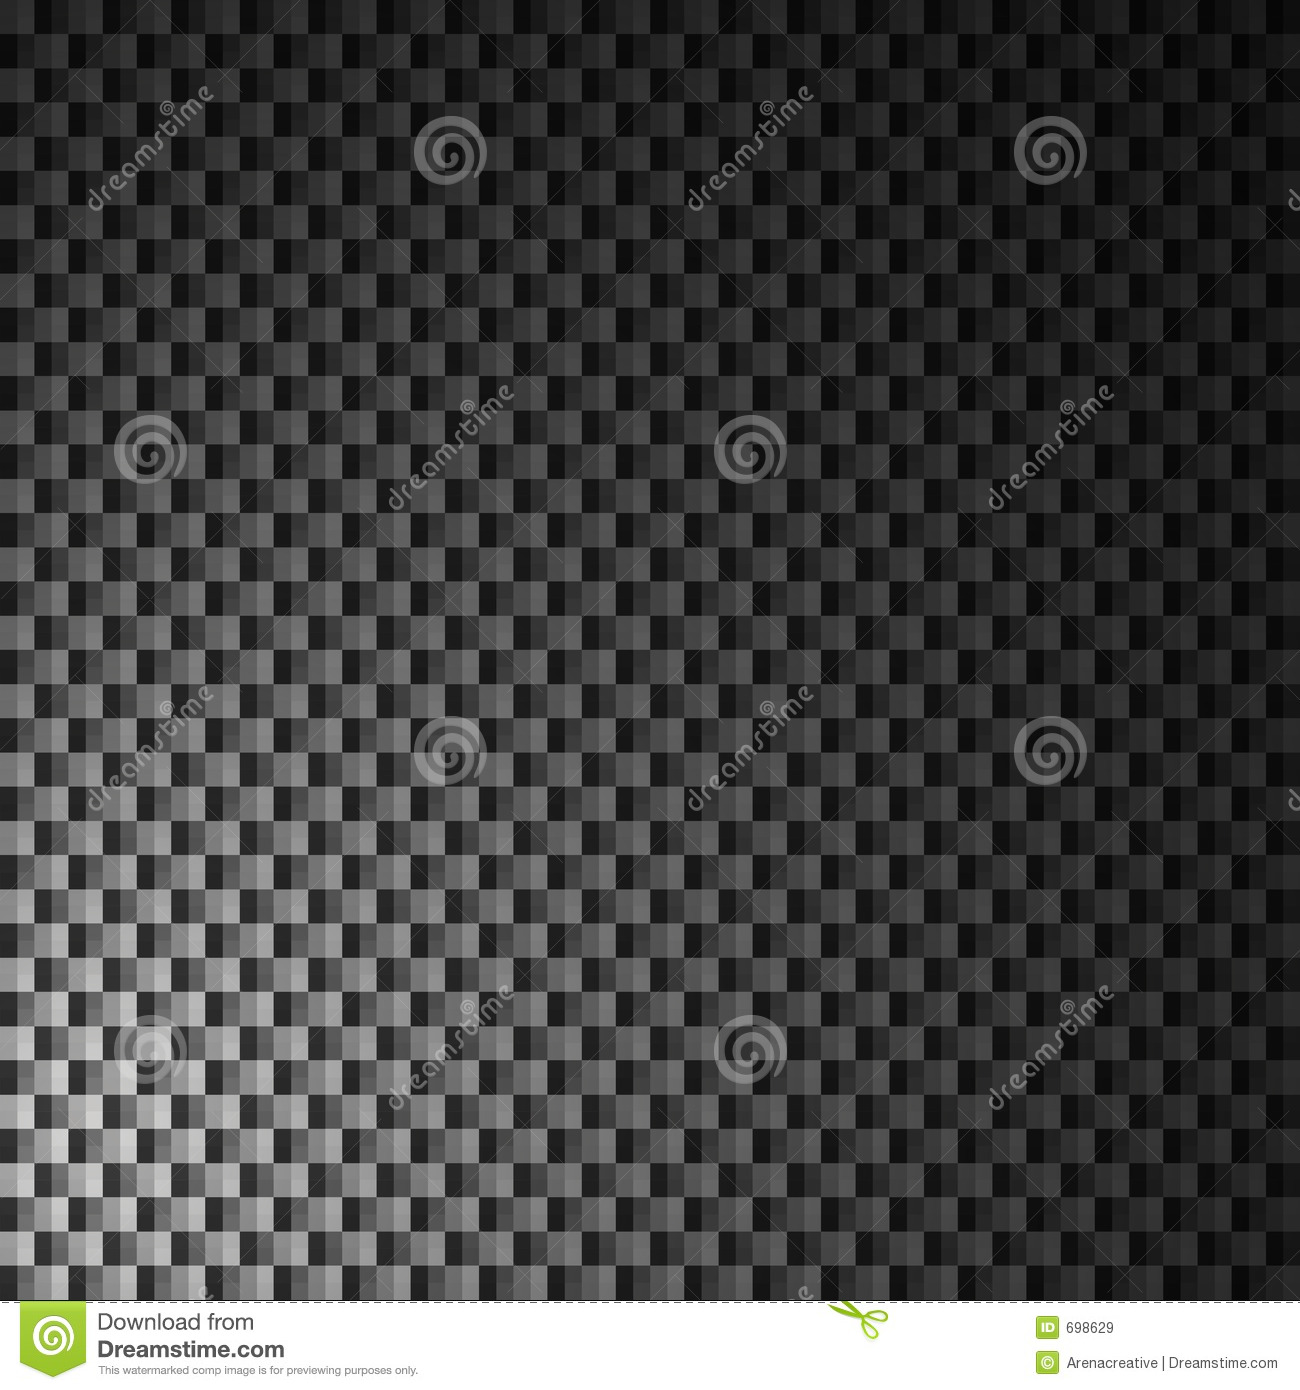 Carbon Fiber Pattern Stock Image Image Of Technology Luxury 698629